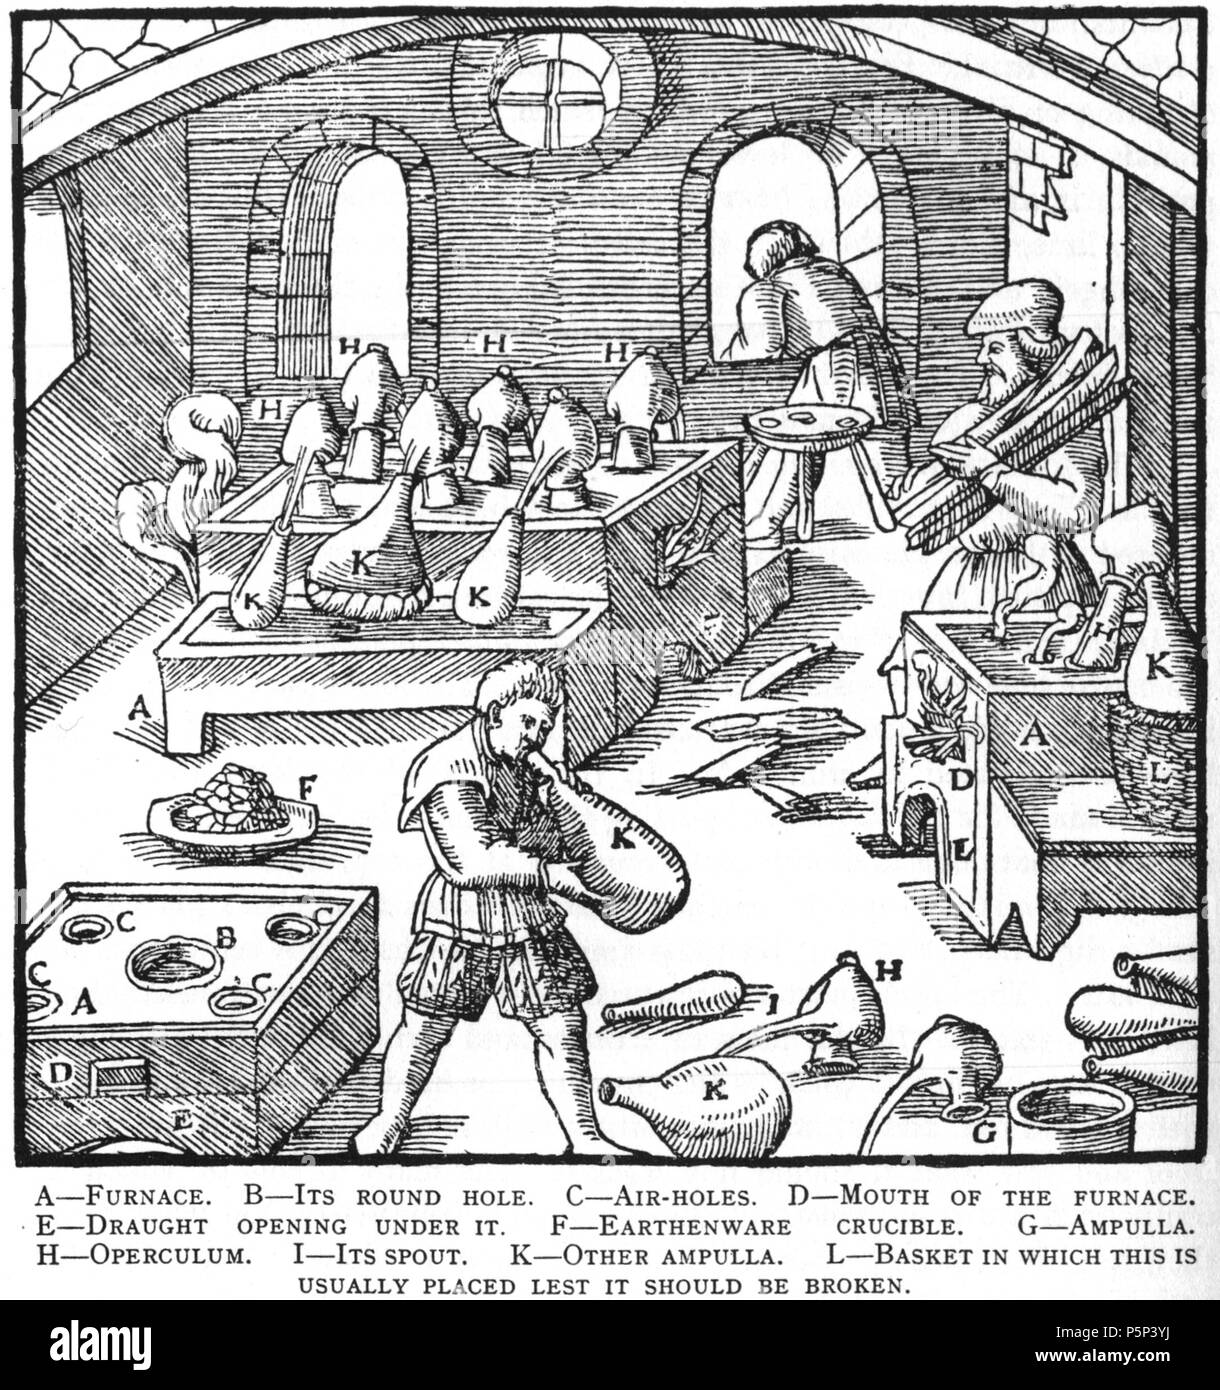 N/A. Woodcut illustration from De re metallica by Georgius Agricola. This is a 300dpi scan from the 1950 Dover edition of the 1913 Hoover translation of the 1556 reference. The Dover edition has slightly smaller size prints than the Hoover (which is a rare book). The woodcuts were recreated for the 1913 printing. Filenames (except for the title page) indicate the chapter (2, 3, 5, etc.) followed by the sequential number of the illustration. 2 May 2005, 06:04:18. TCO (talk) 222 Book10-1 - Stock Image